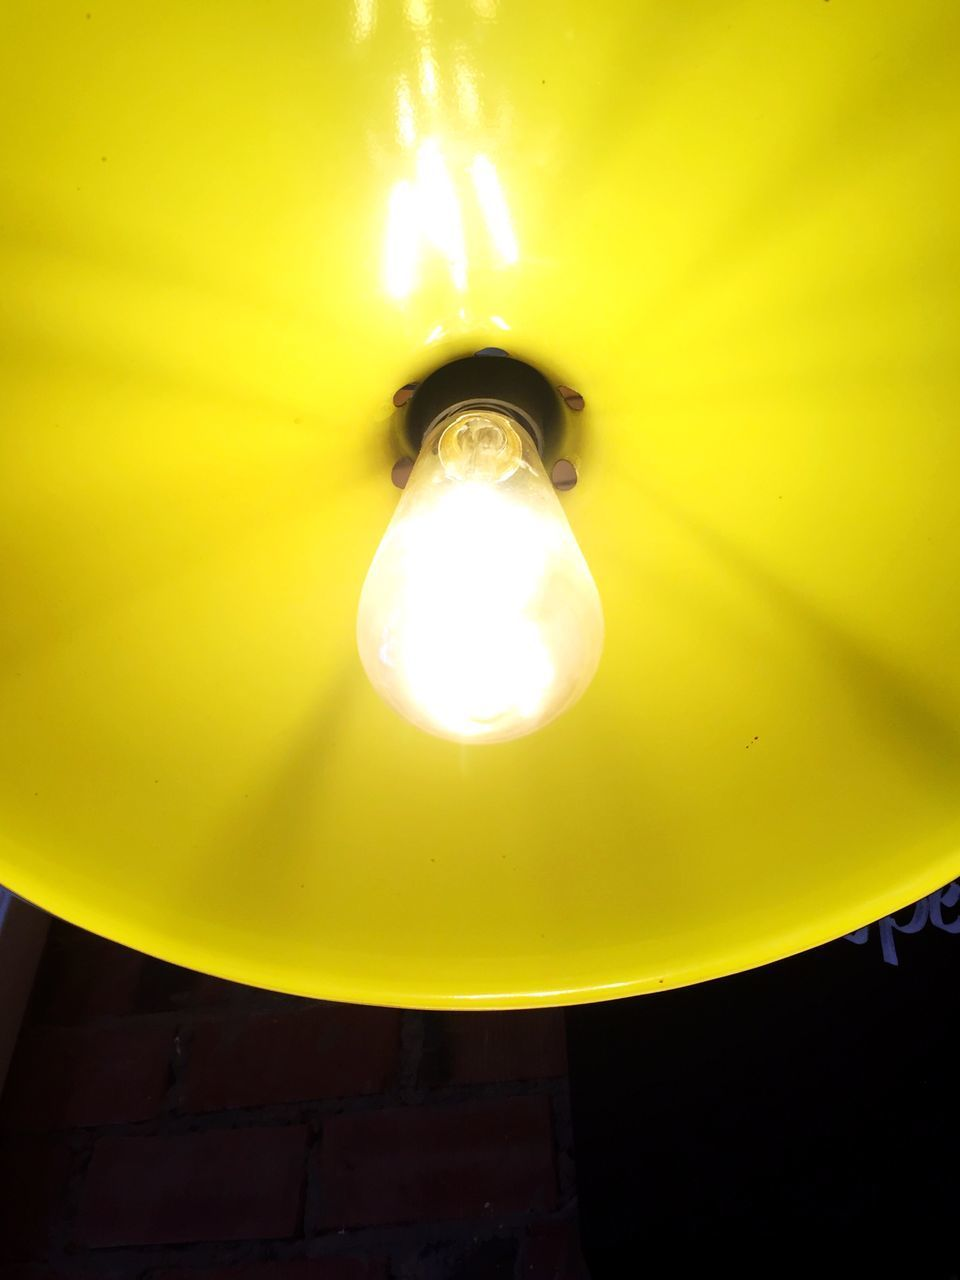 LOW ANGLE VIEW OF ILLUMINATED ELECTRIC LIGHT BULB